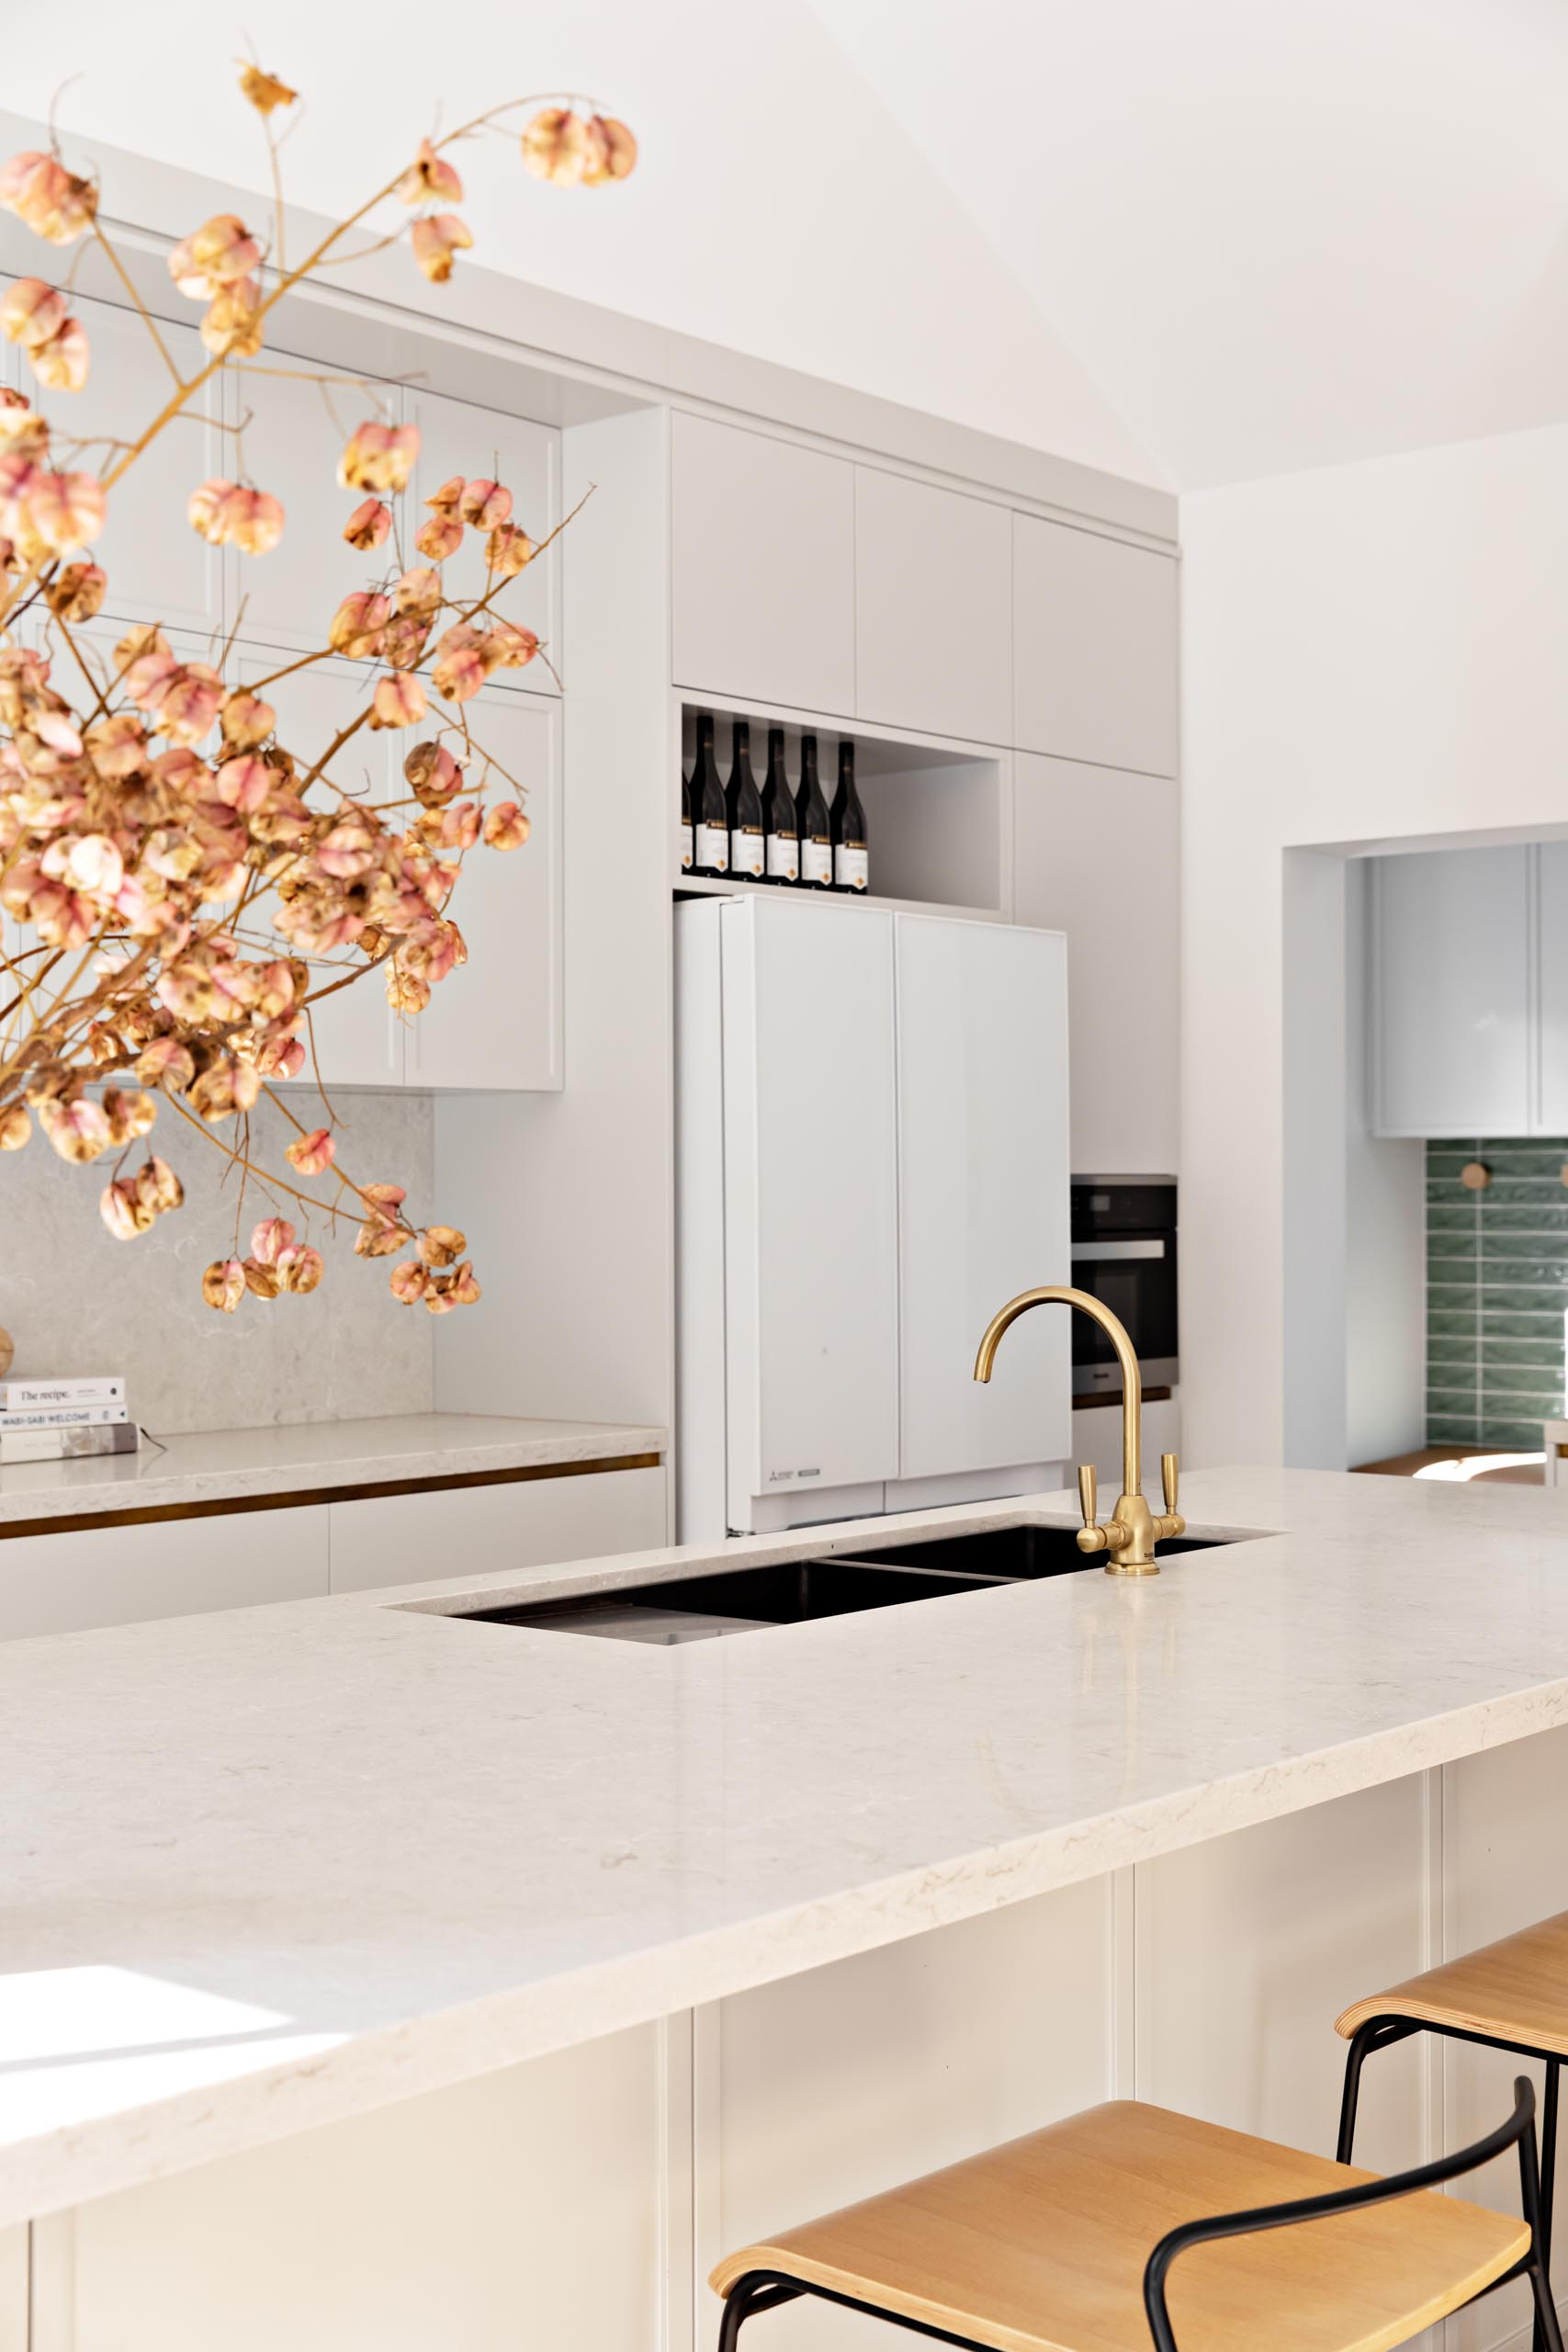 A modern kitchen with light grey cabinets, a long island, and light stone countertops.